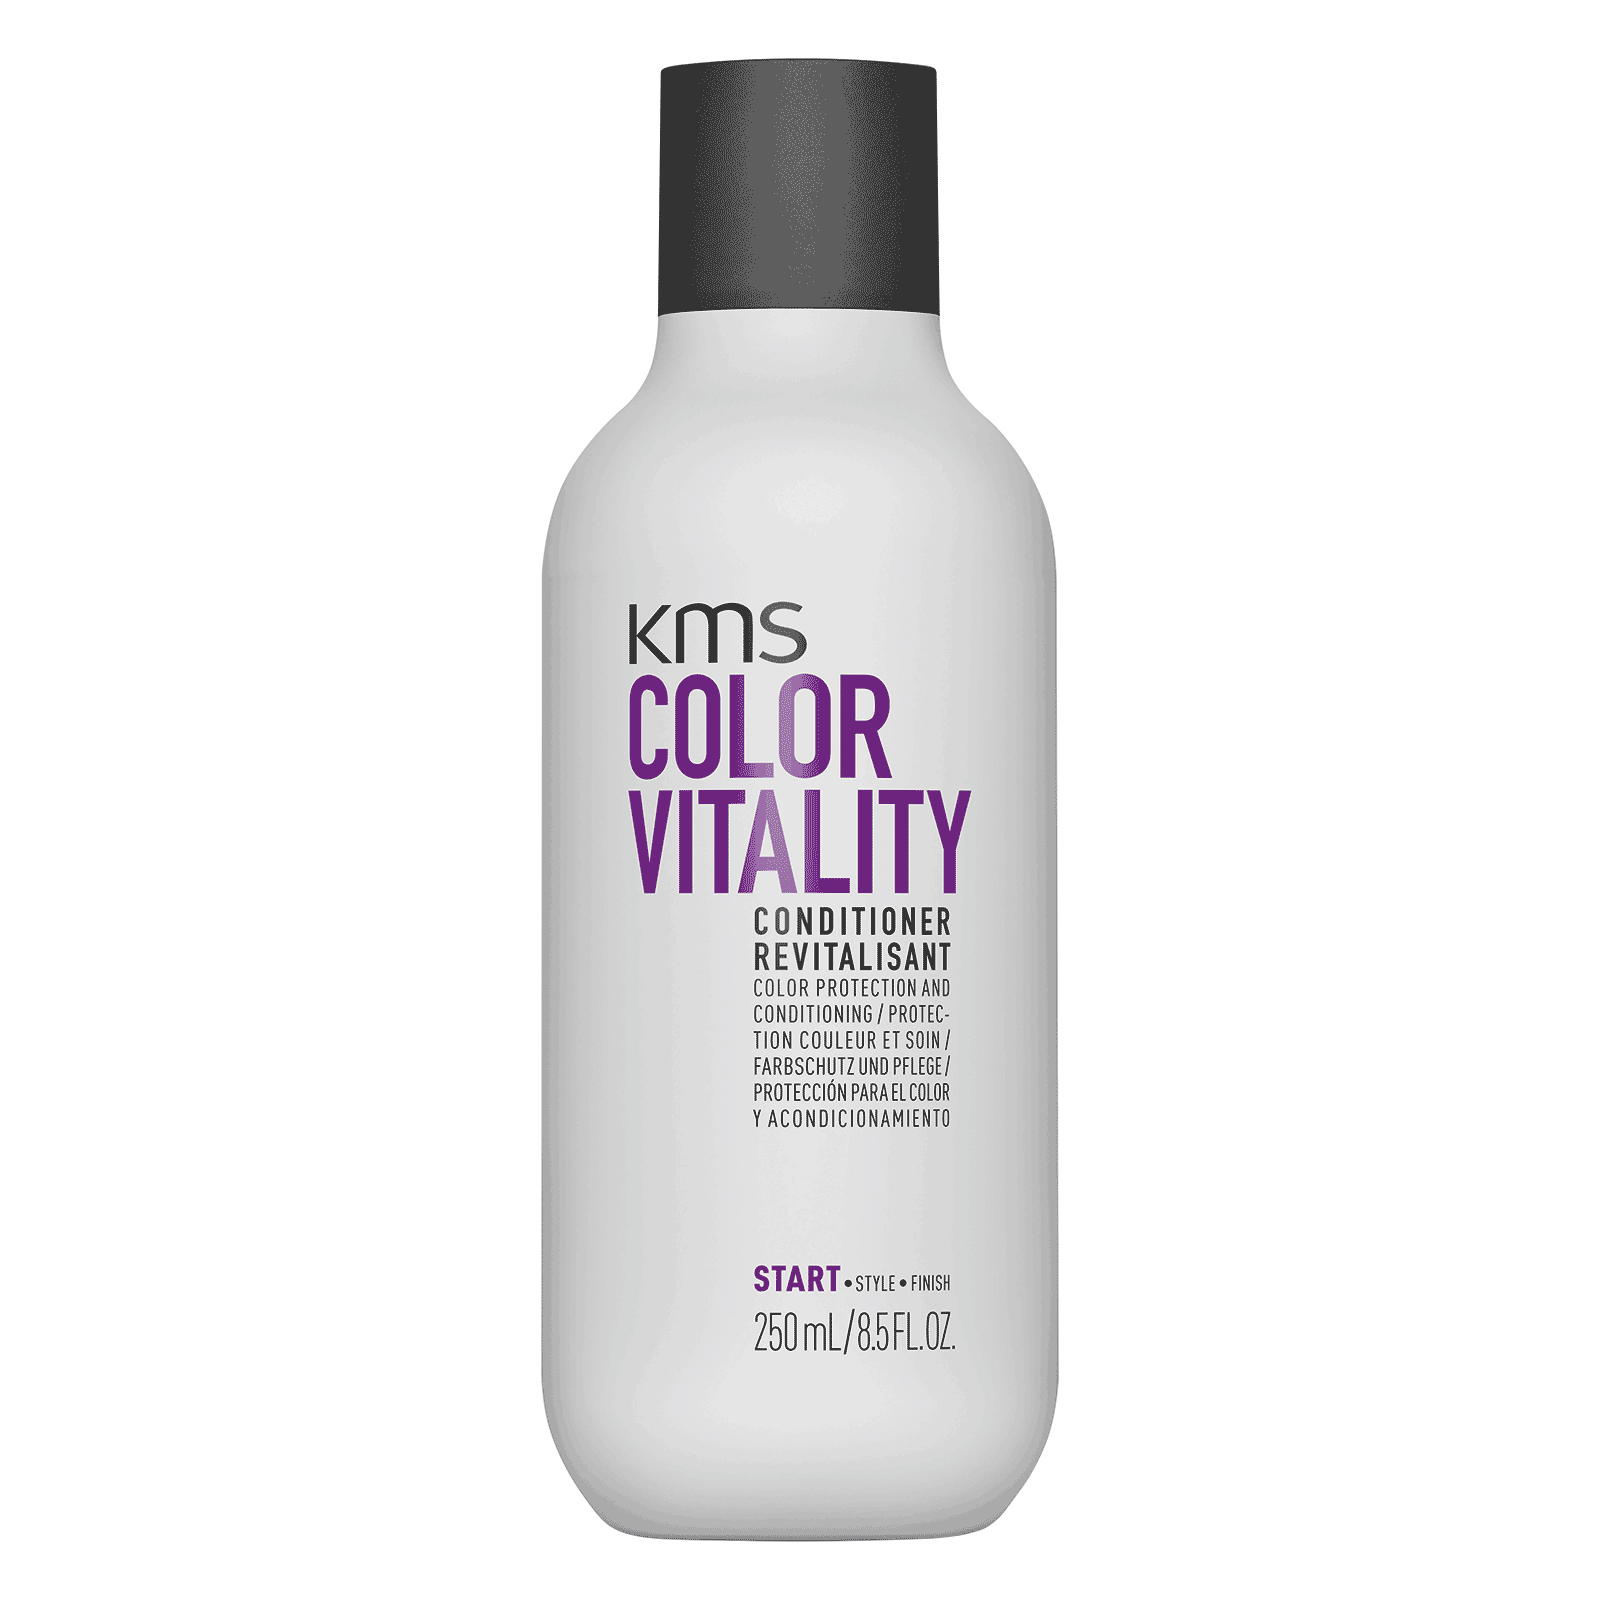 COLORVITALITY Conditioner